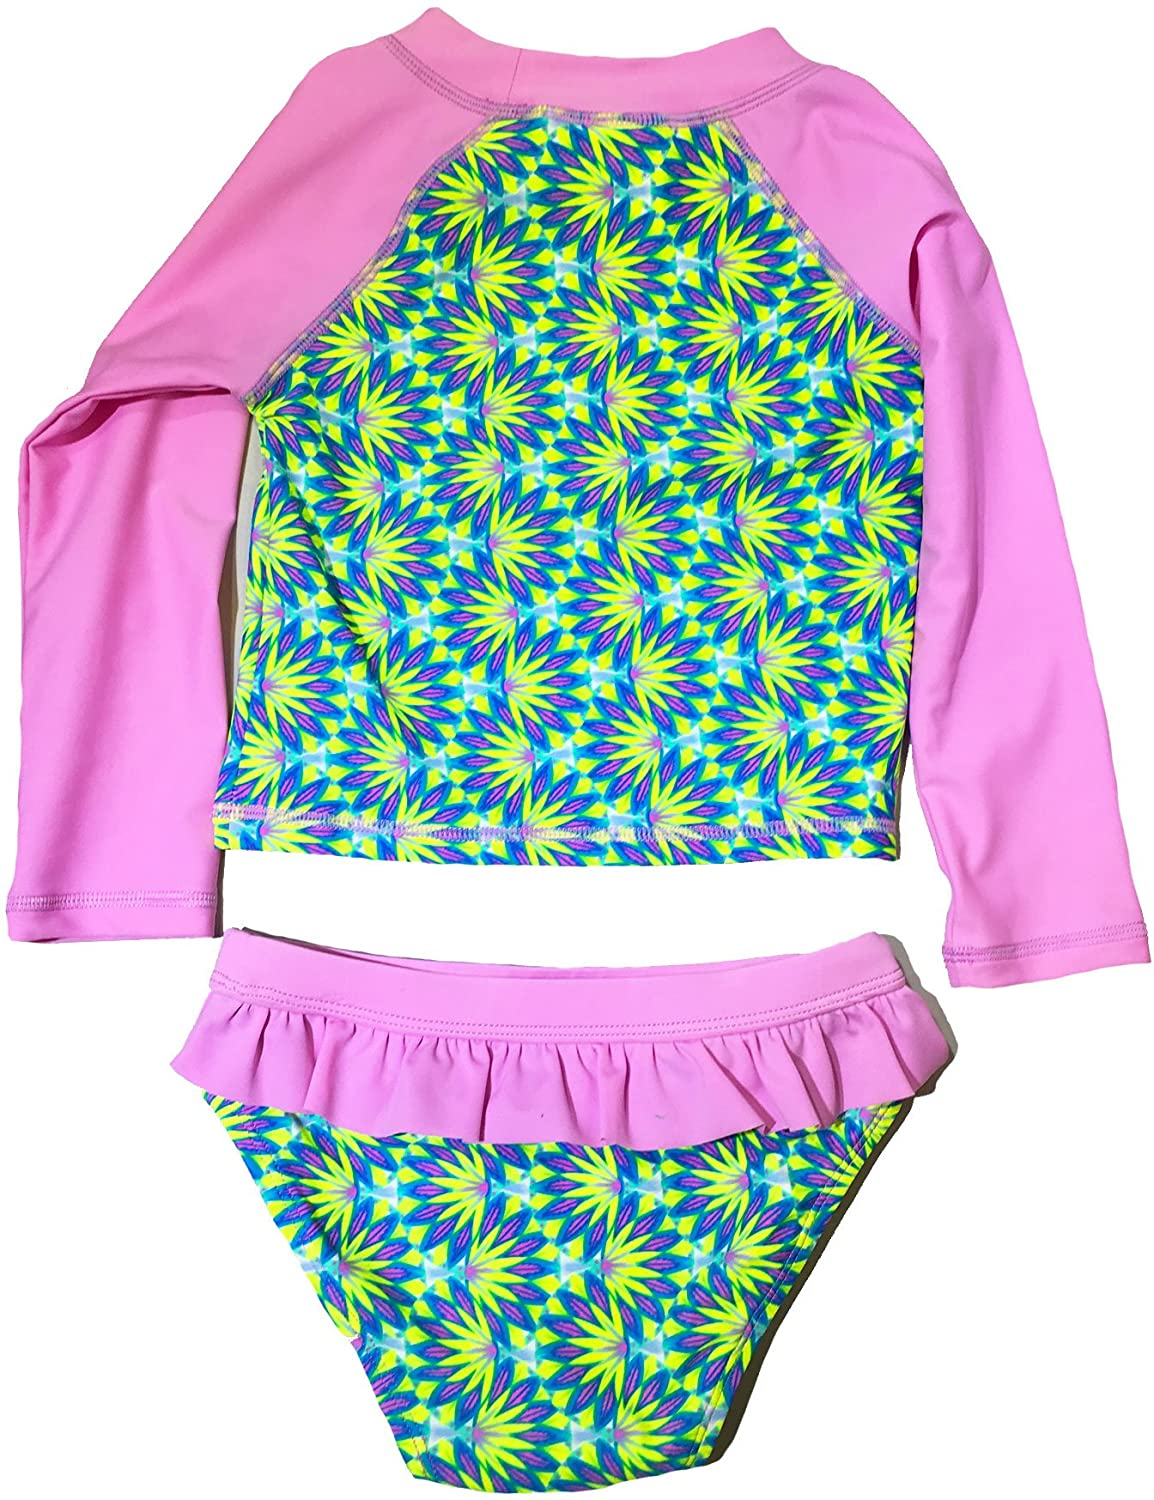 Tankini INGEAR Baby//Toddler Girls Swimsuit Rashguard 2 Piece Set UPF 50